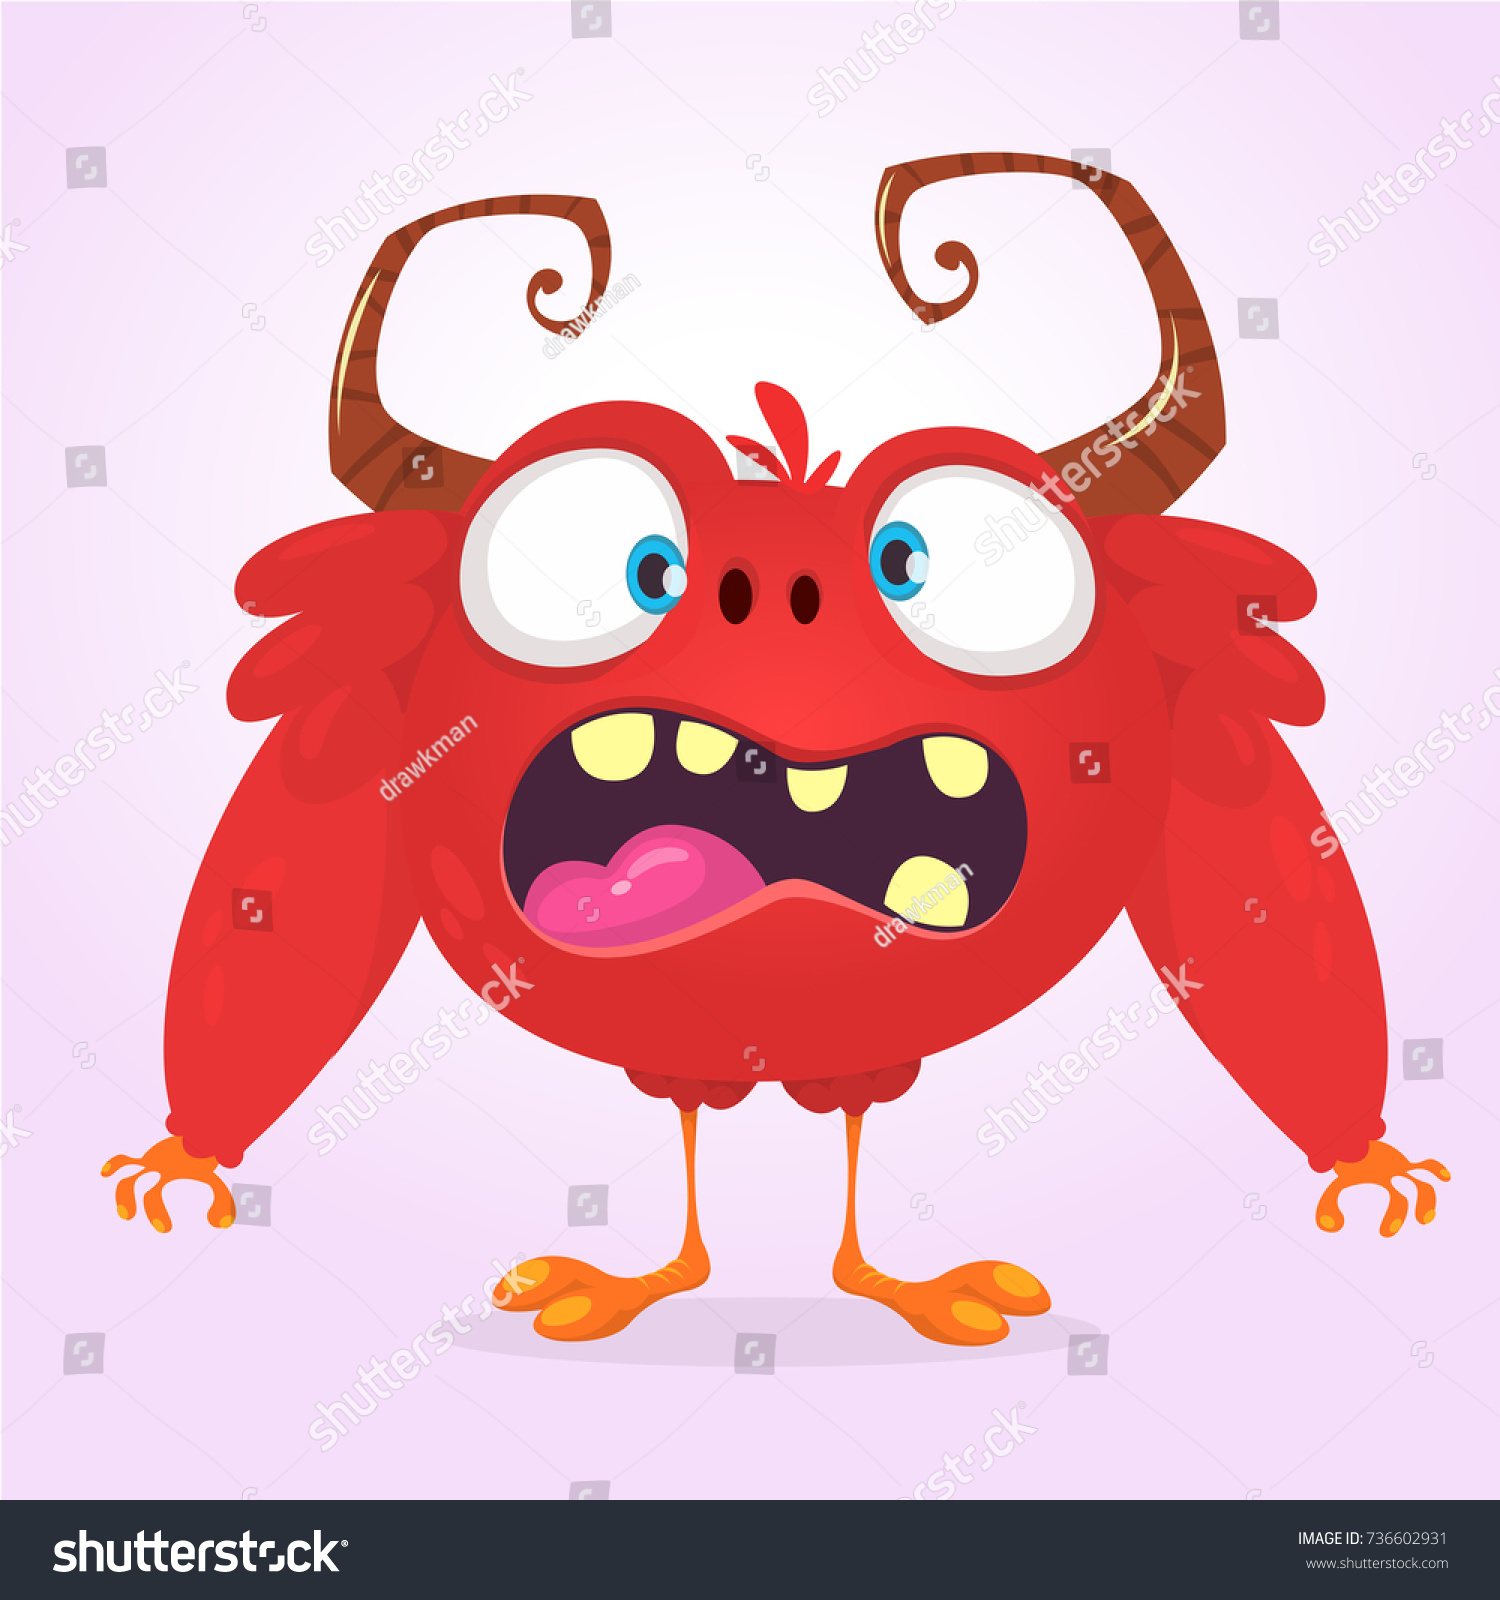 angry cartoon furry horned monster halloween stock vector (royalty